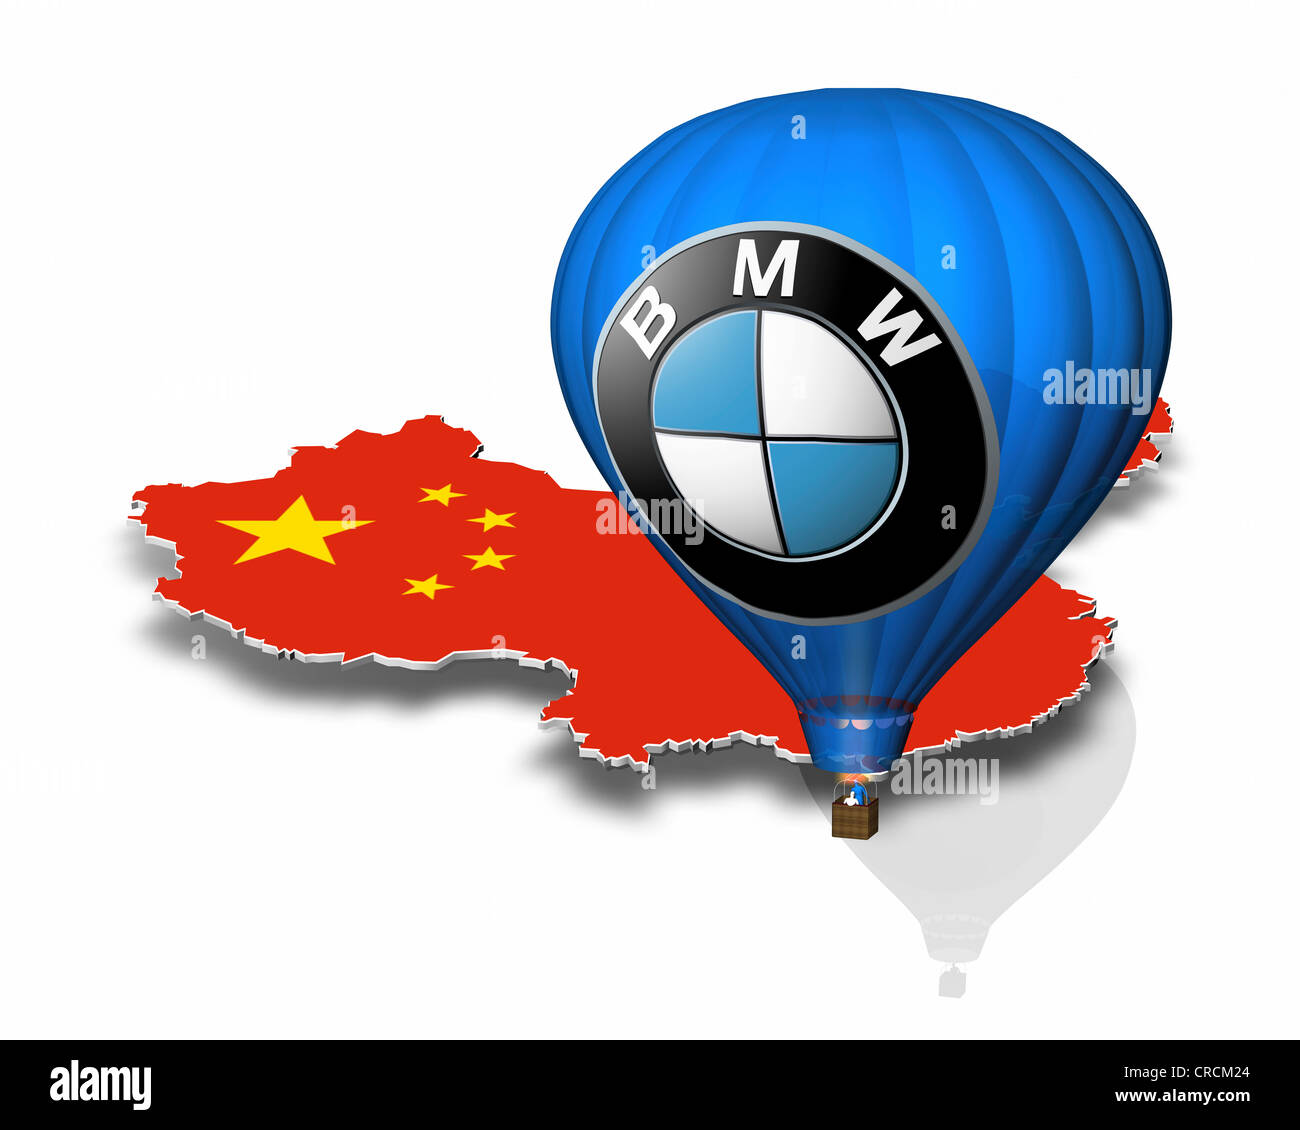 Outline of China, hot-air balloon, BMW logo - Stock Image